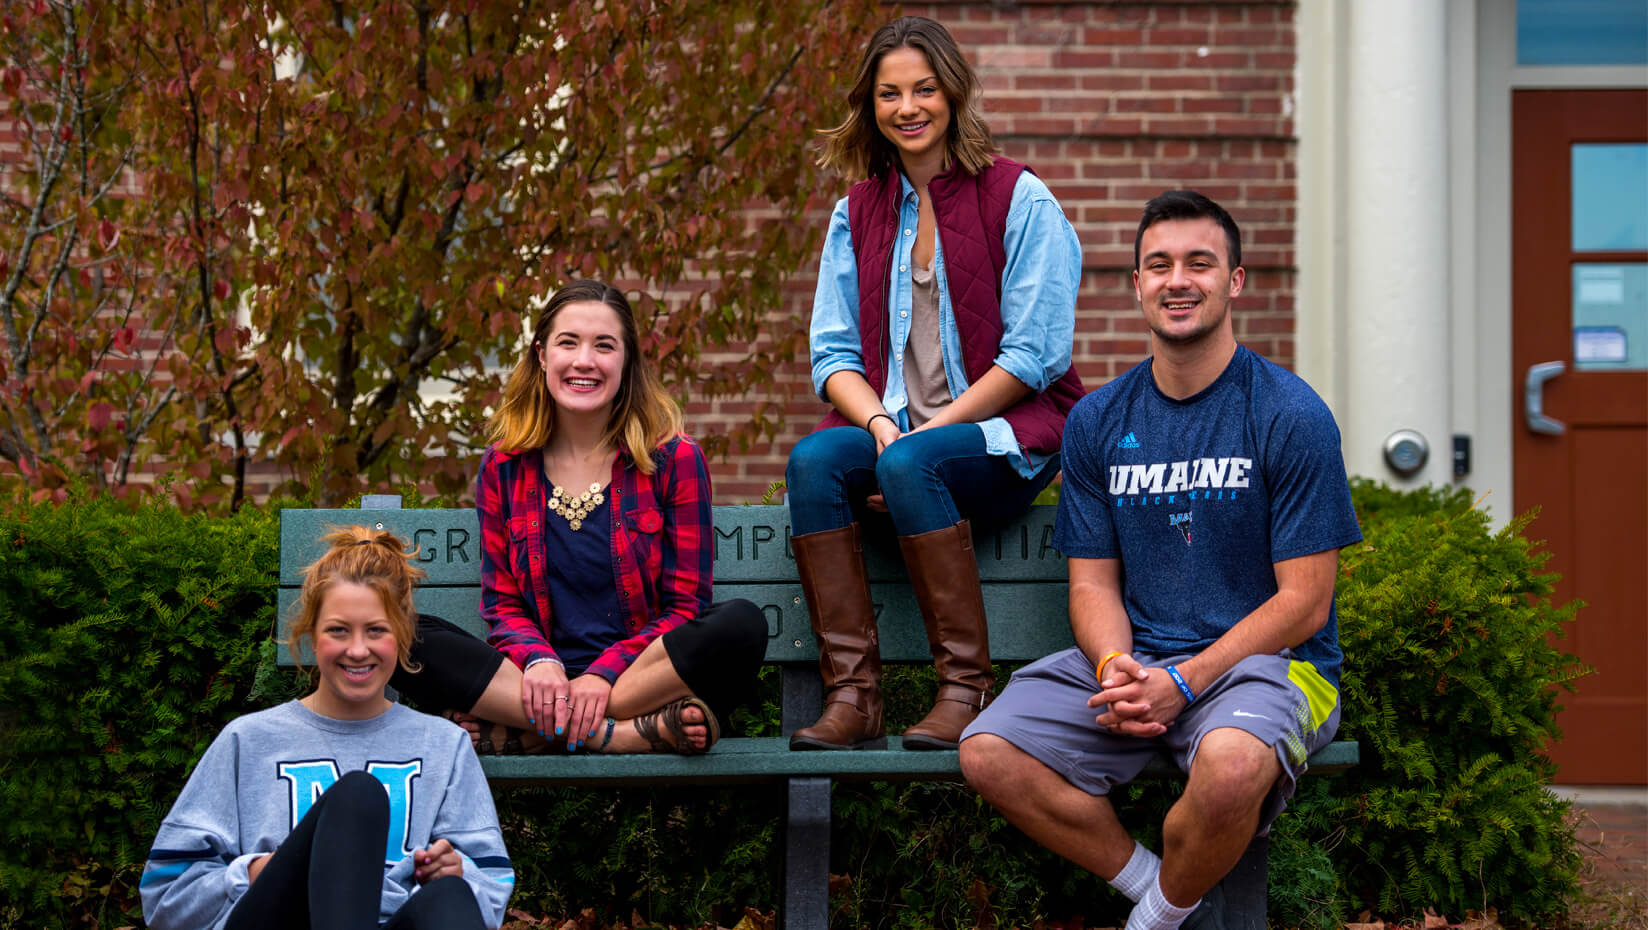 UMaine students outside in fall